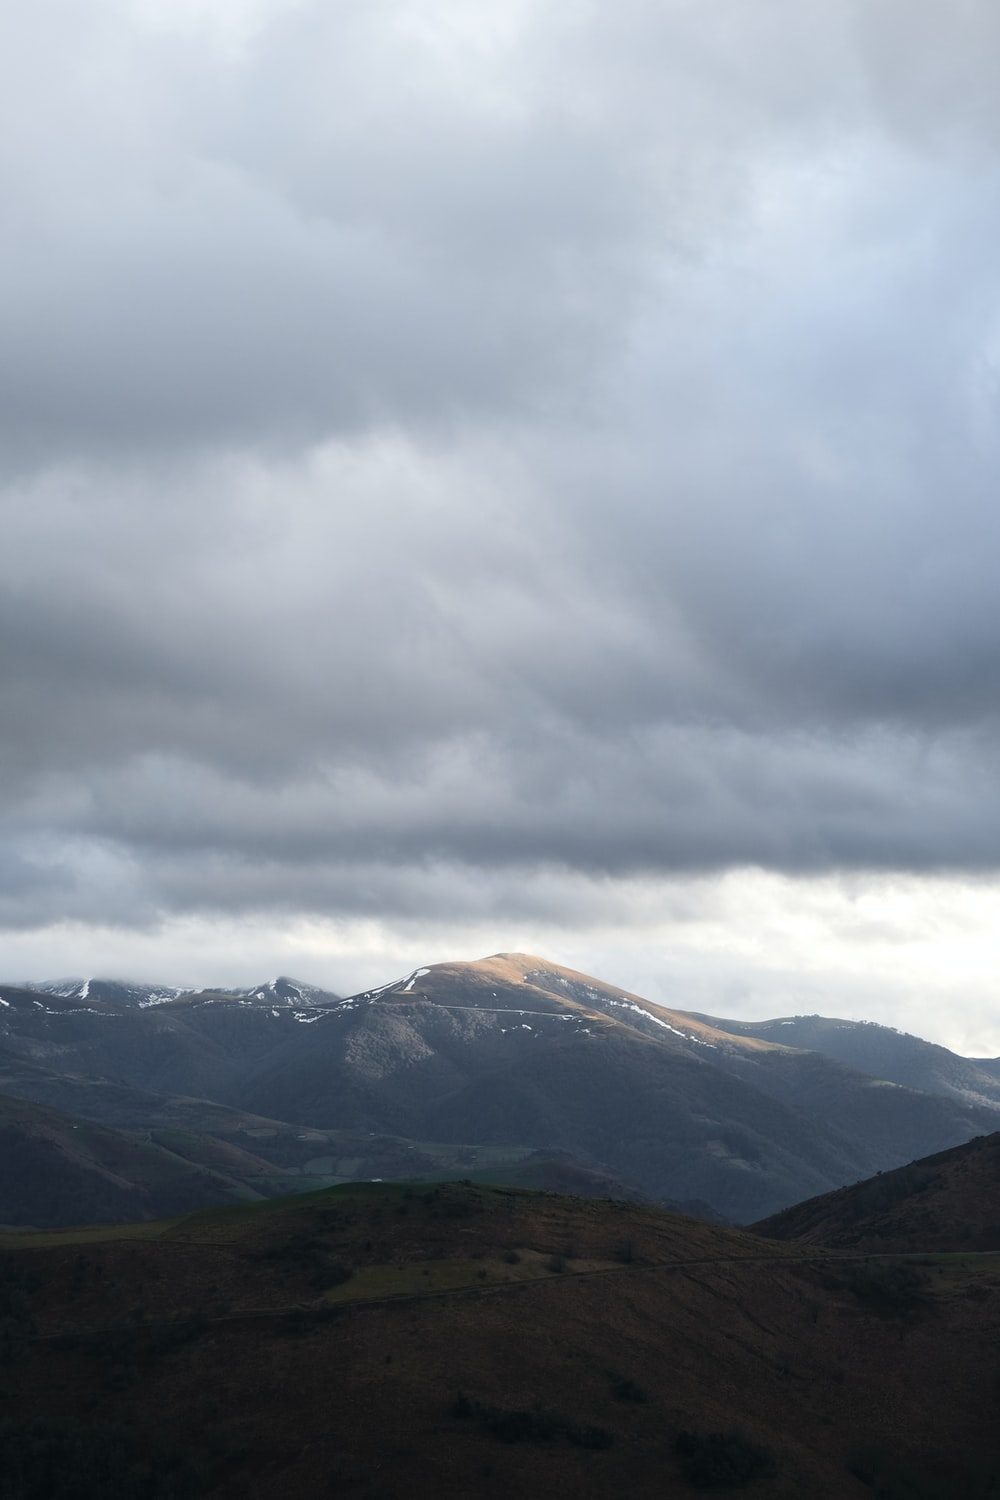 green and brown mountains under white clouds during daytime